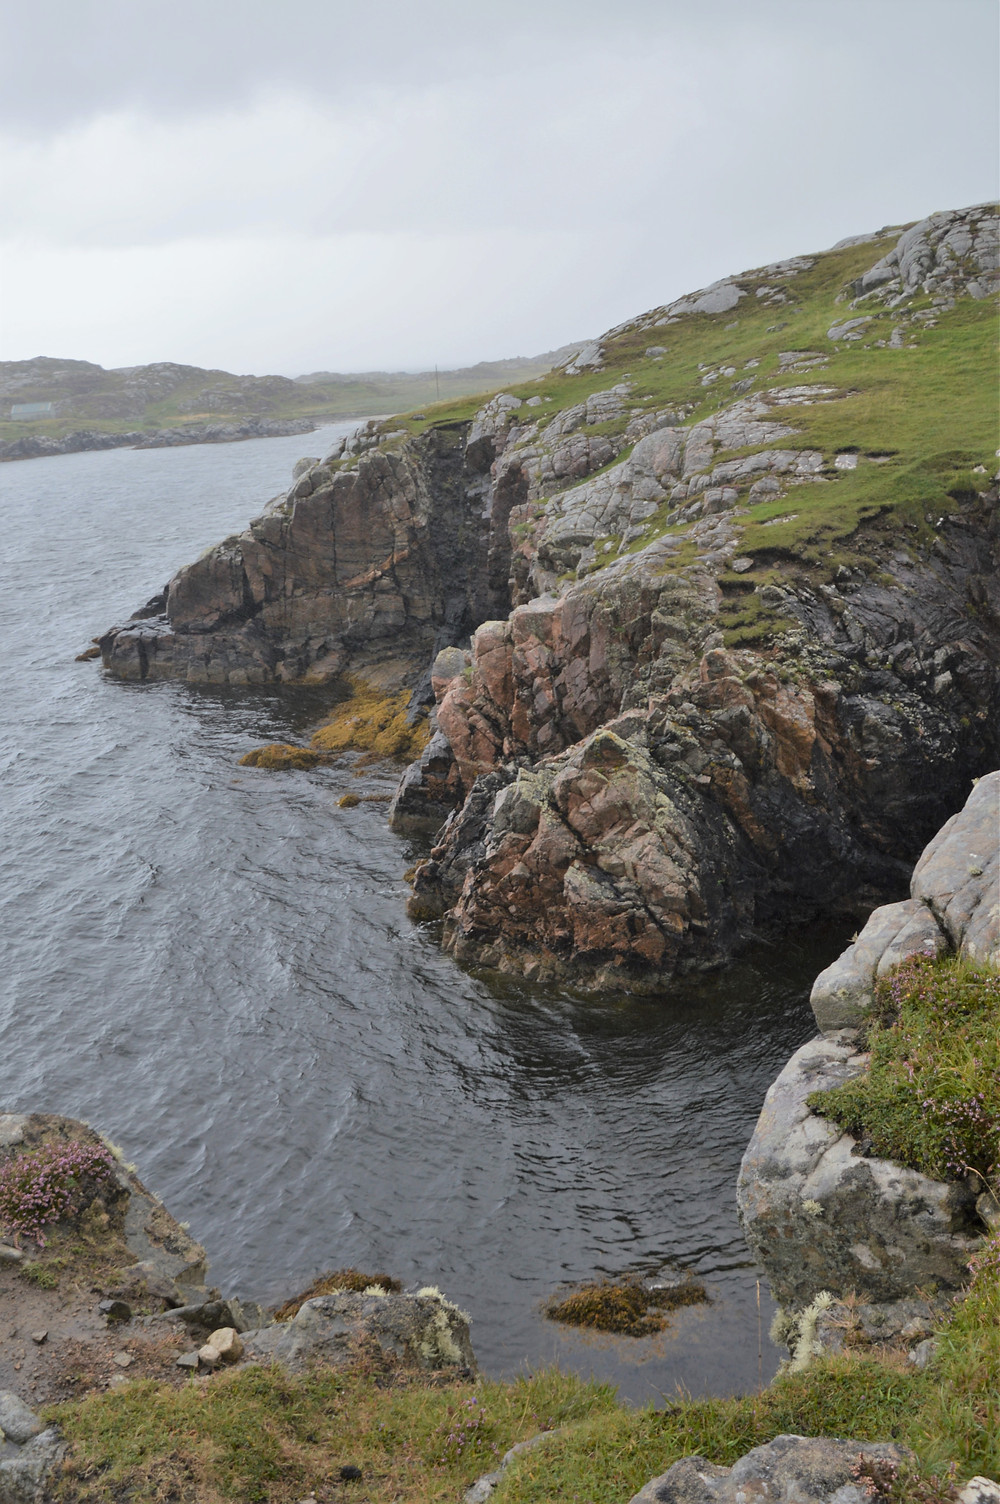 Rocky ledges and sea cliffs rose 50 feet above the water of Loch Roag on Great Bernera Loop hike on the